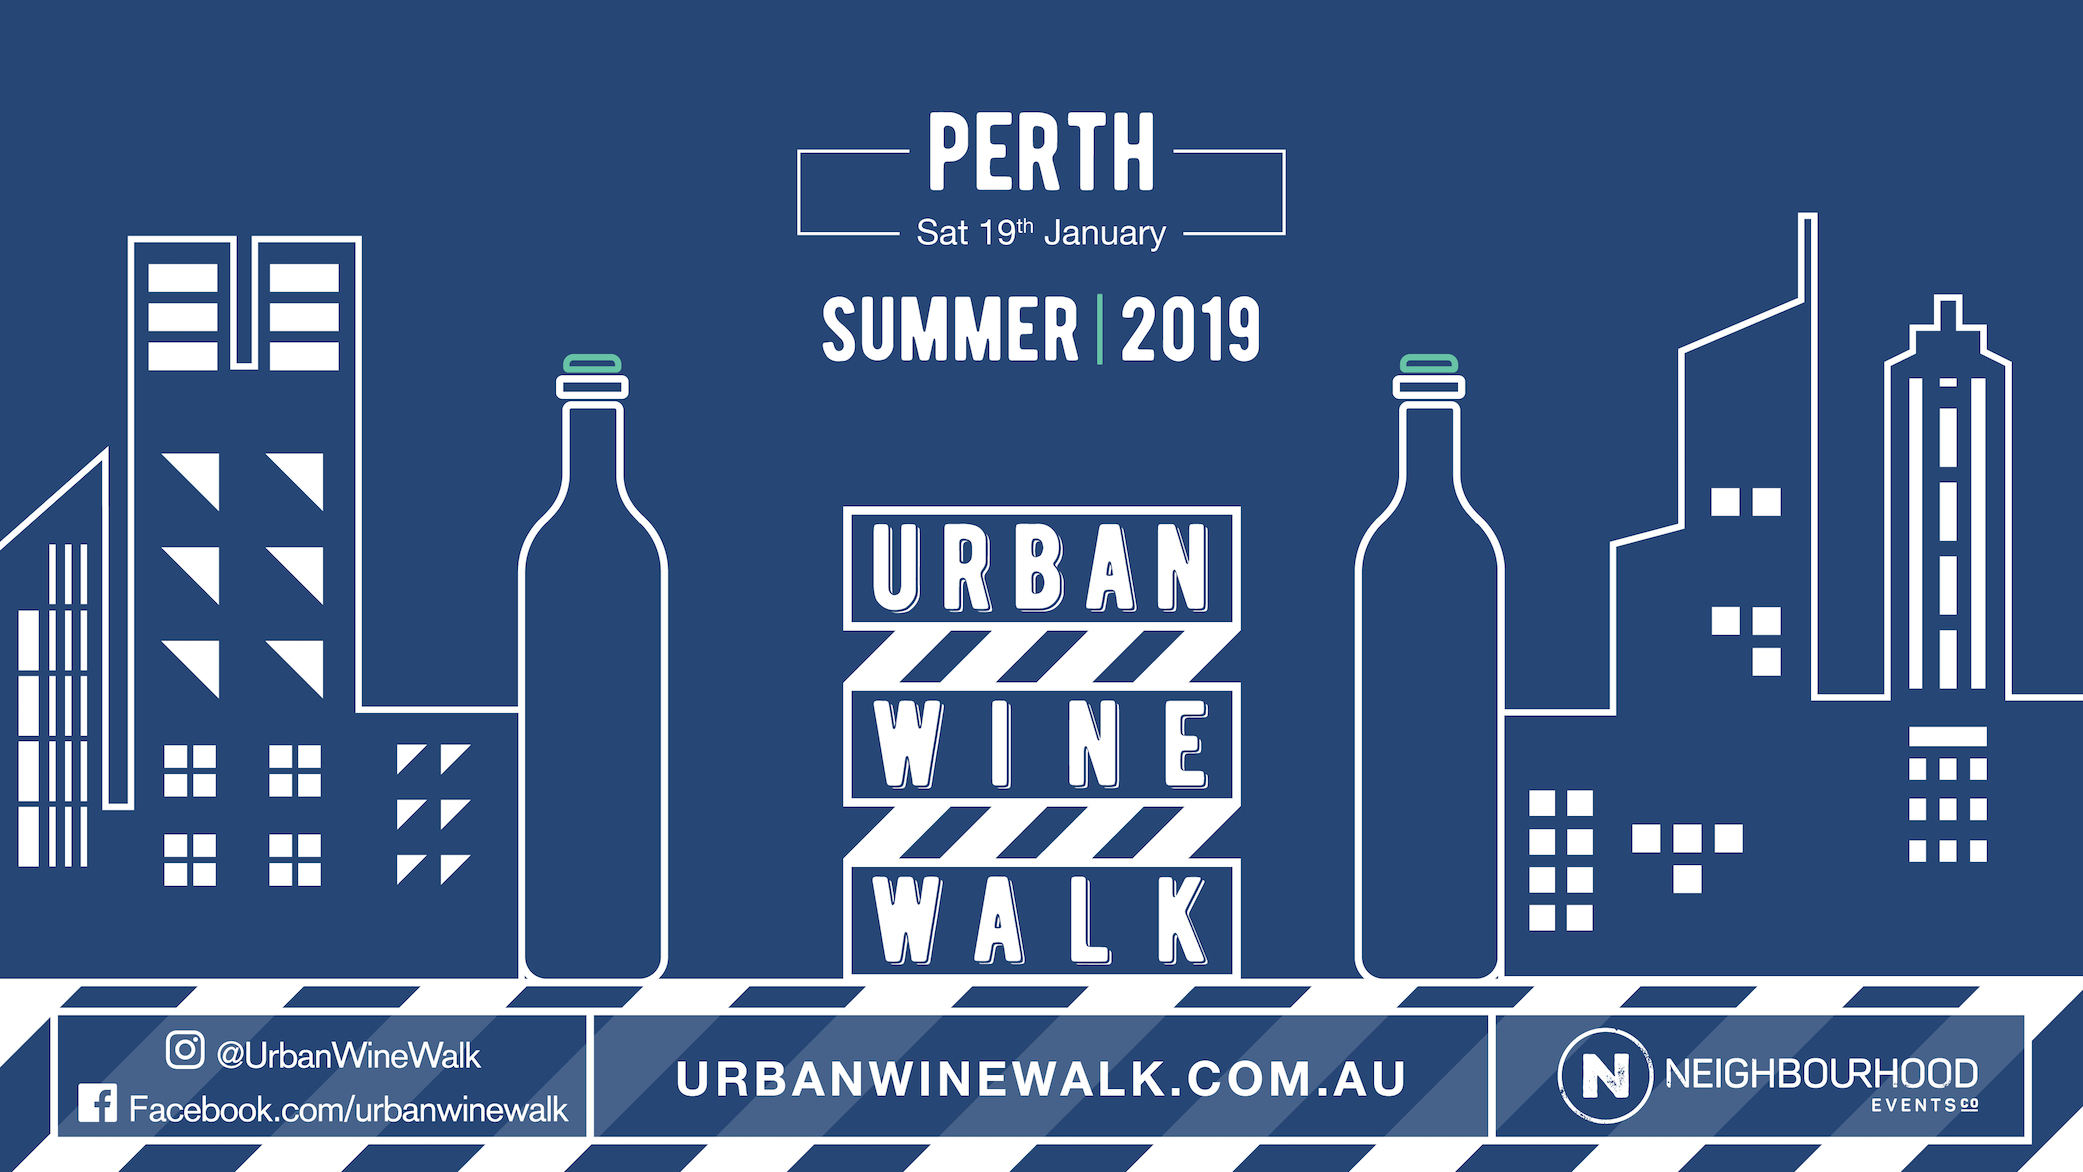 Tickets for Urban Wine Walk Perth (City) in Perth from Ticketbooth